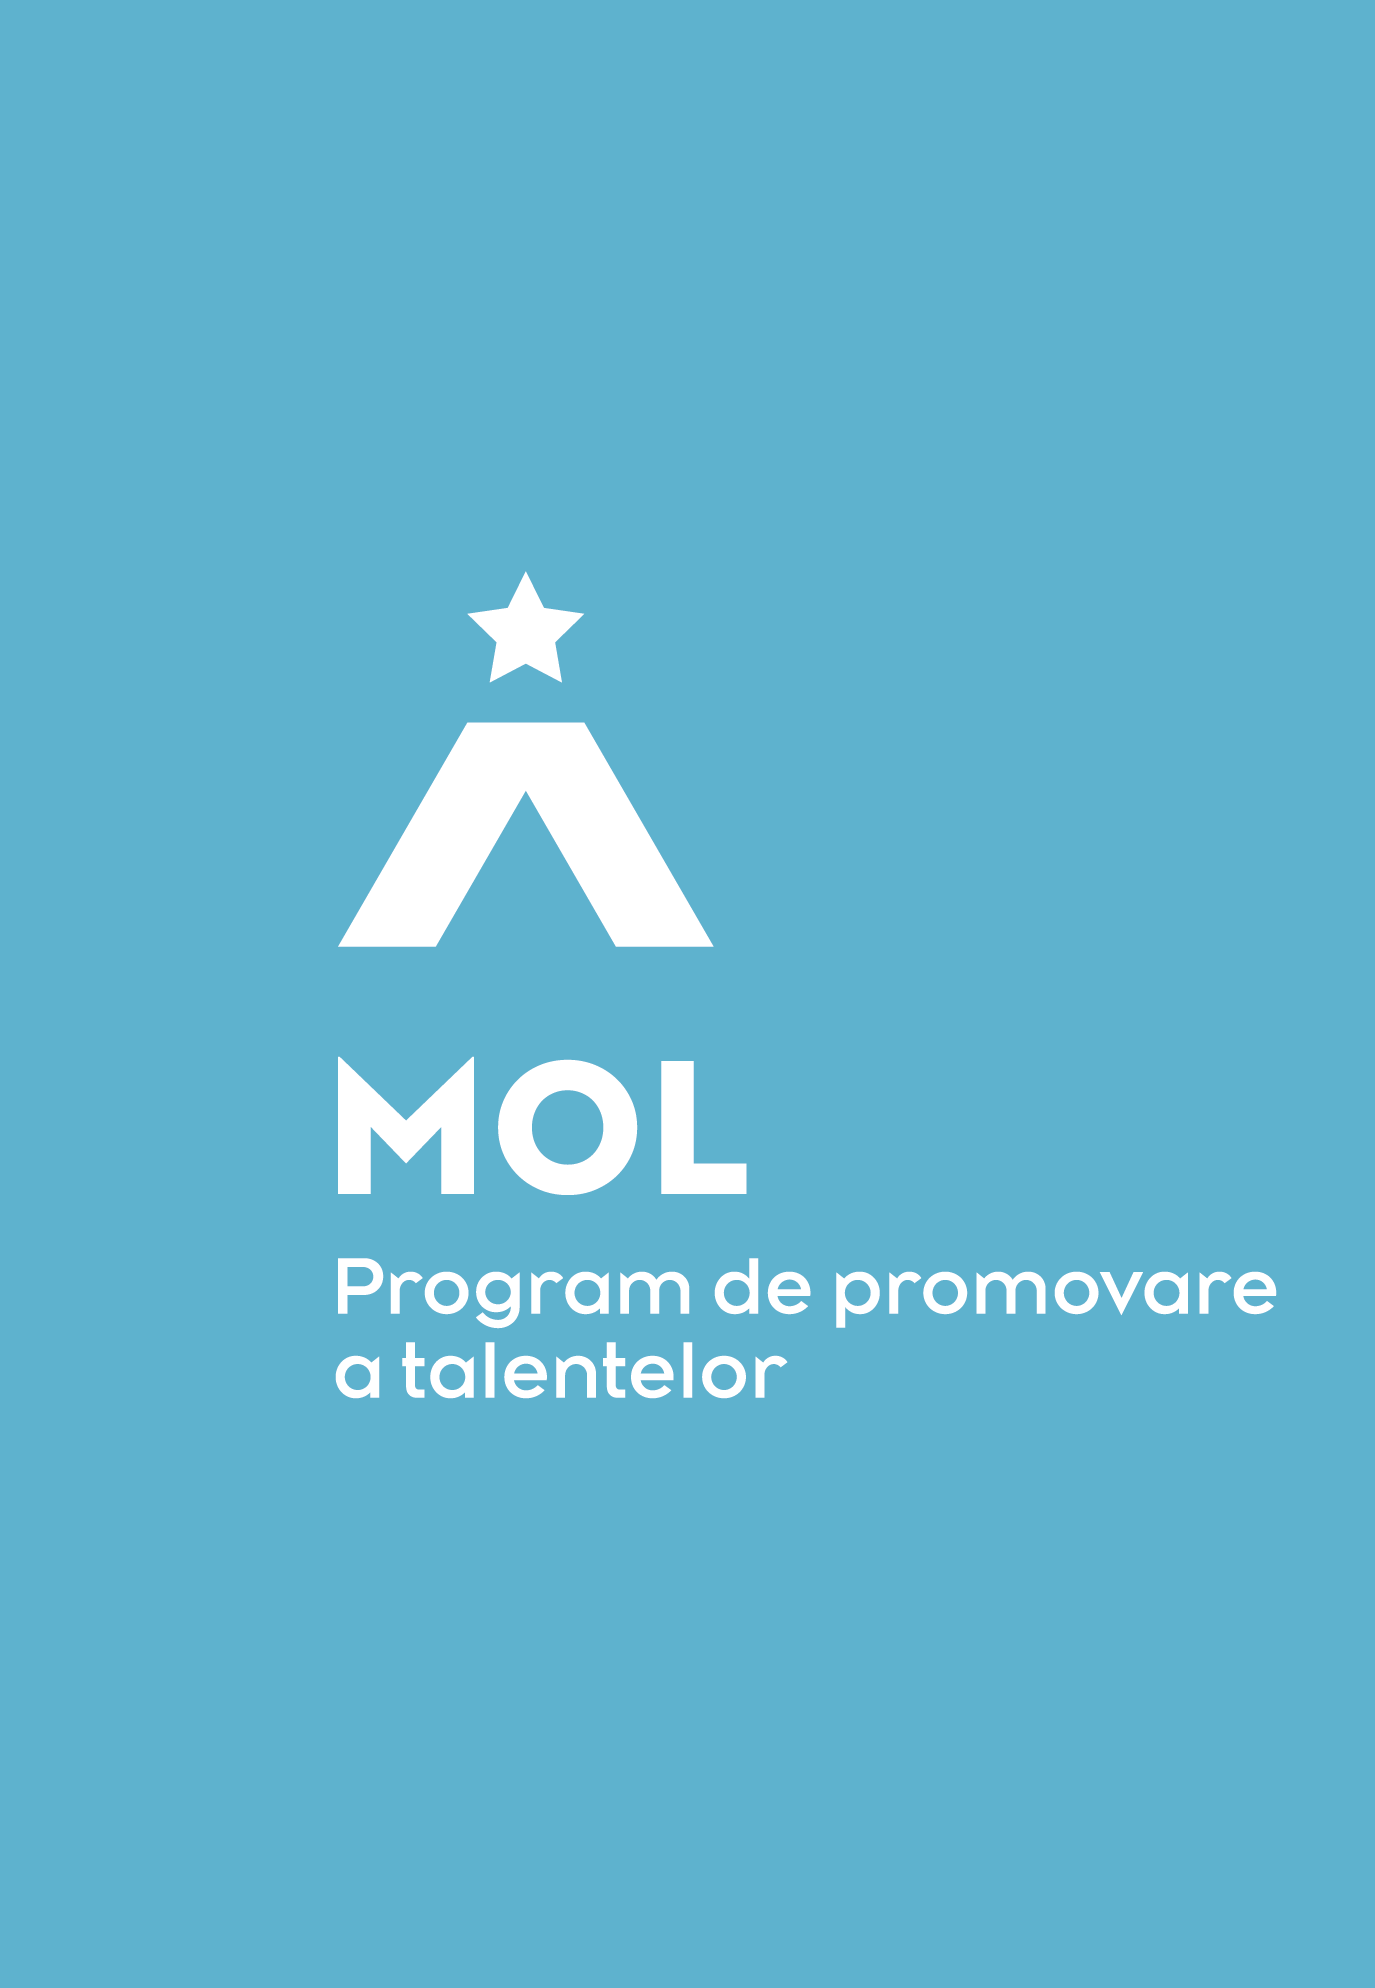 program de promovare a talentelor